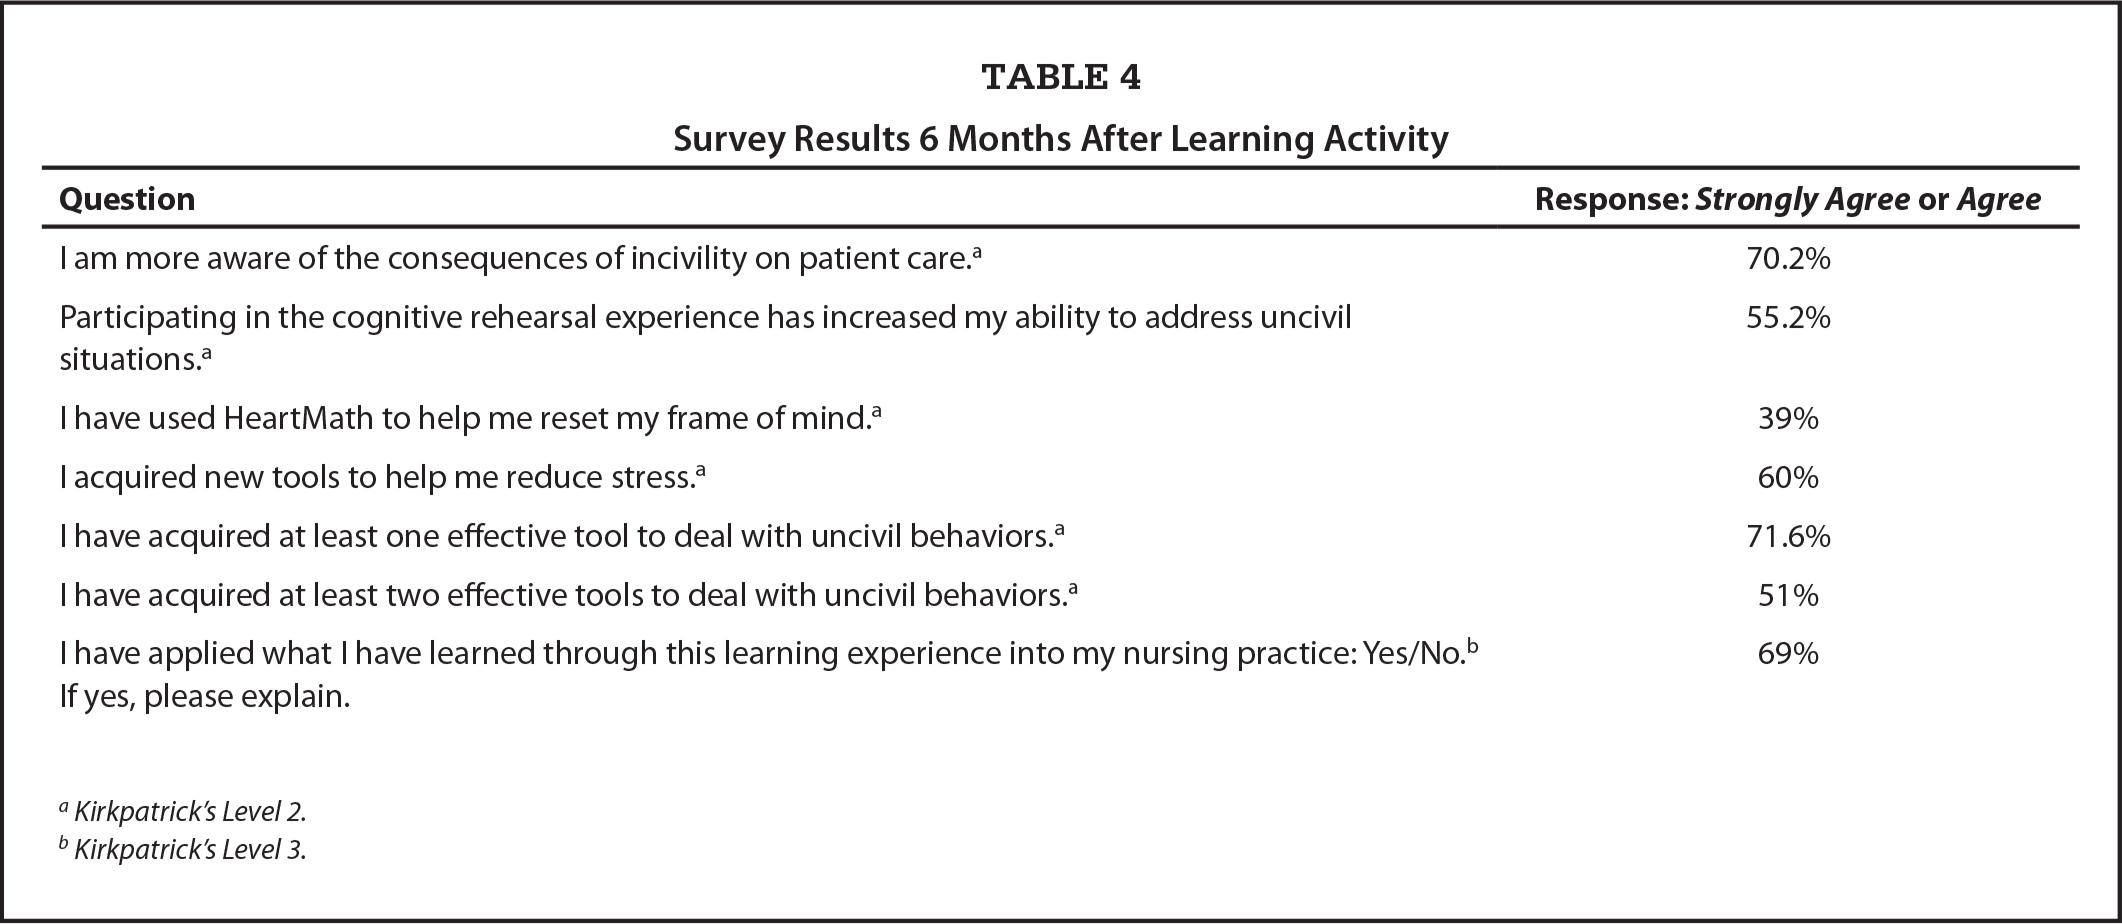 Survey Results 6 Months After Learning Activity